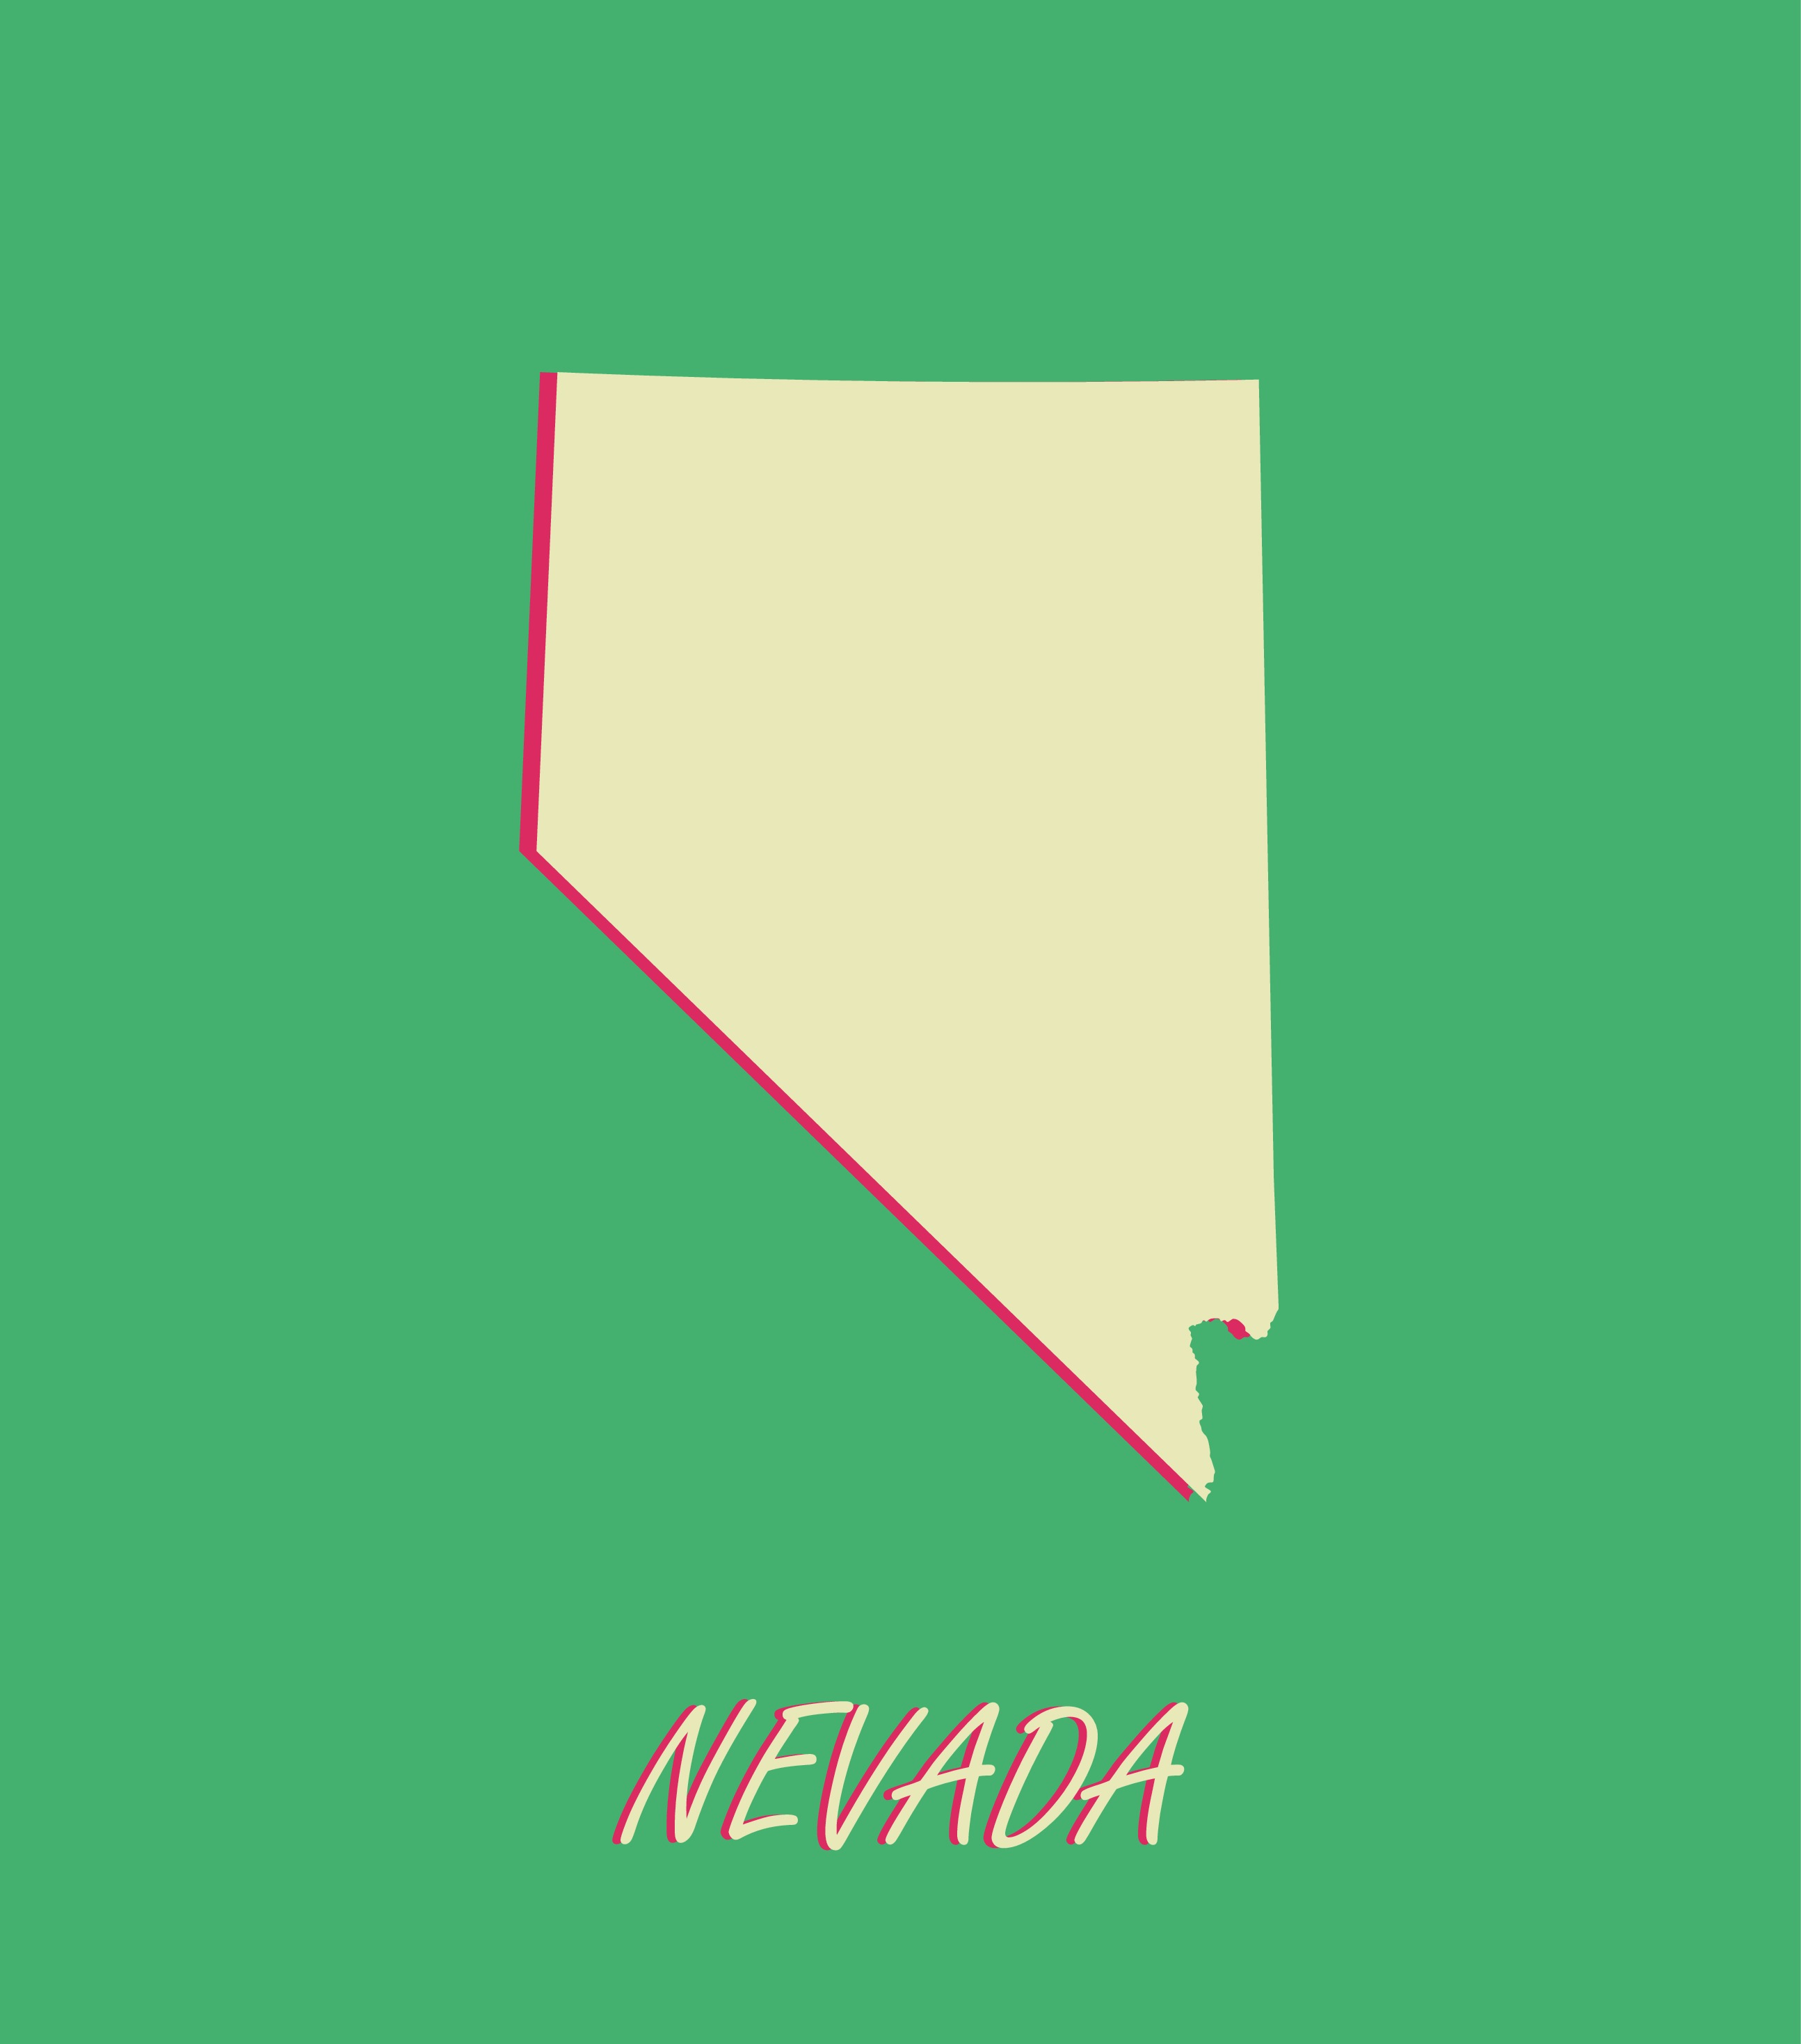 Nanny tax and payroll requirements for Nevada families